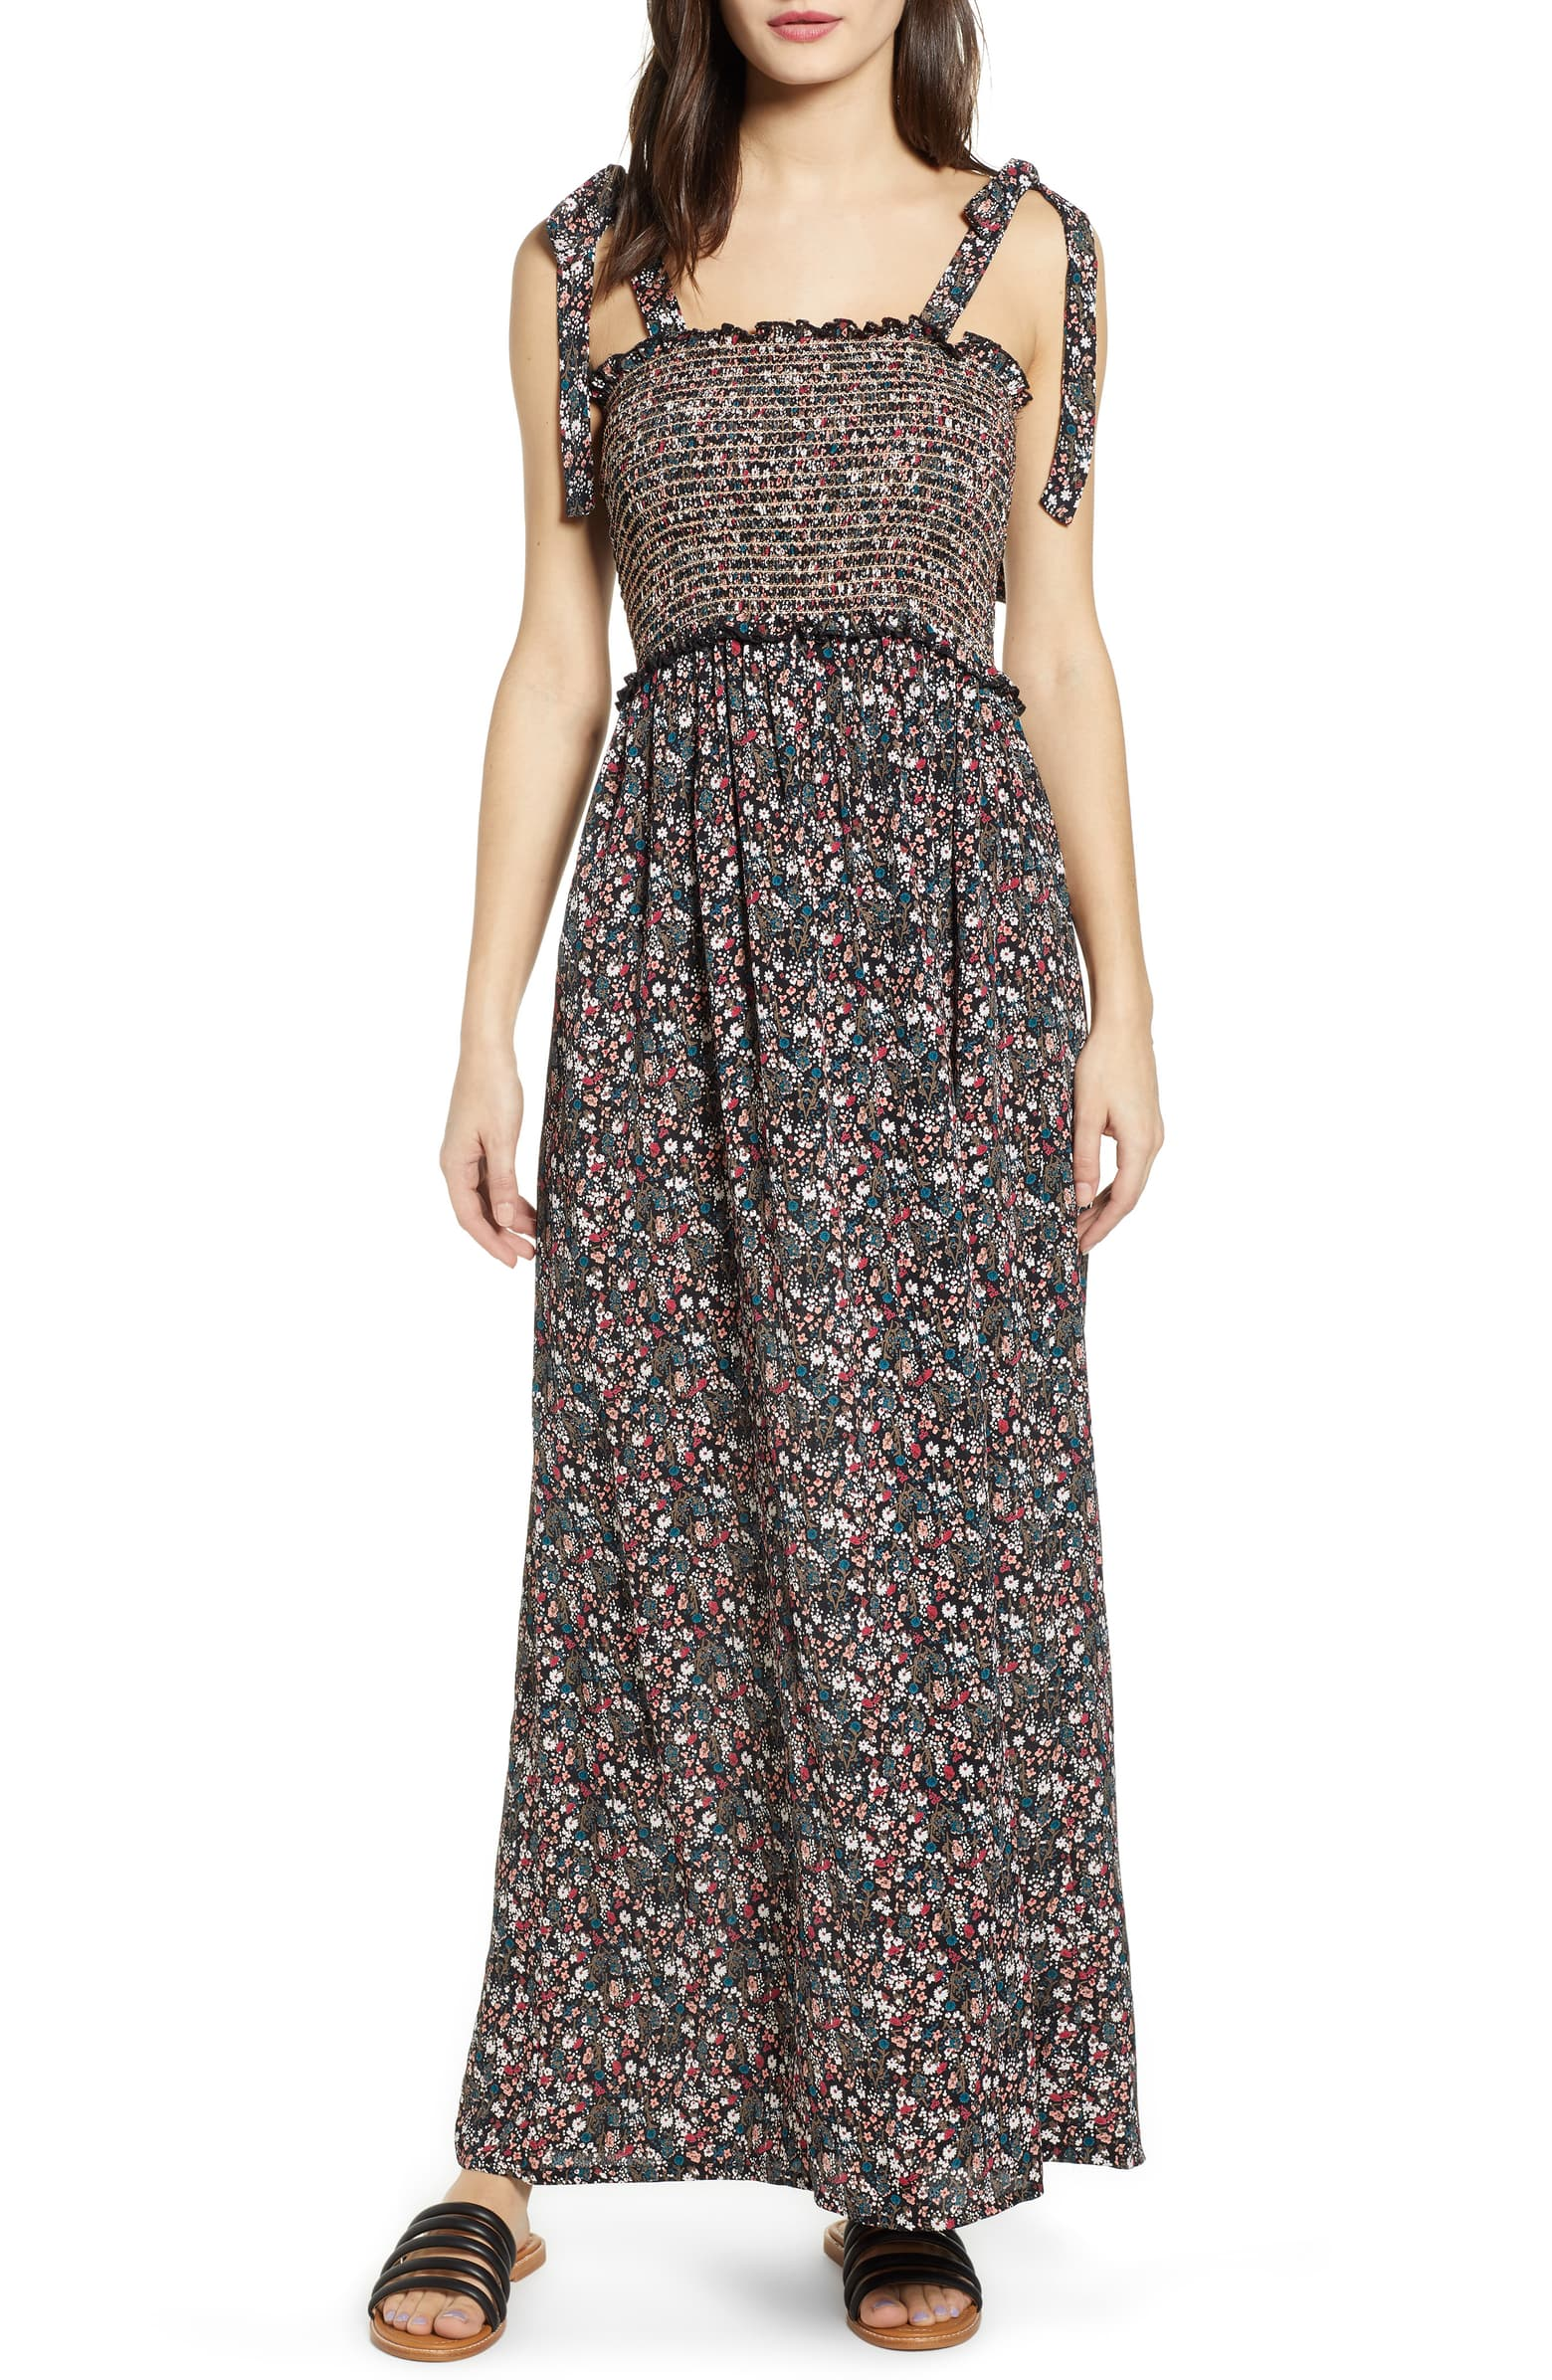 Cutest Dresses - Angie Tie Strap Floral Smocked Maxi Dress